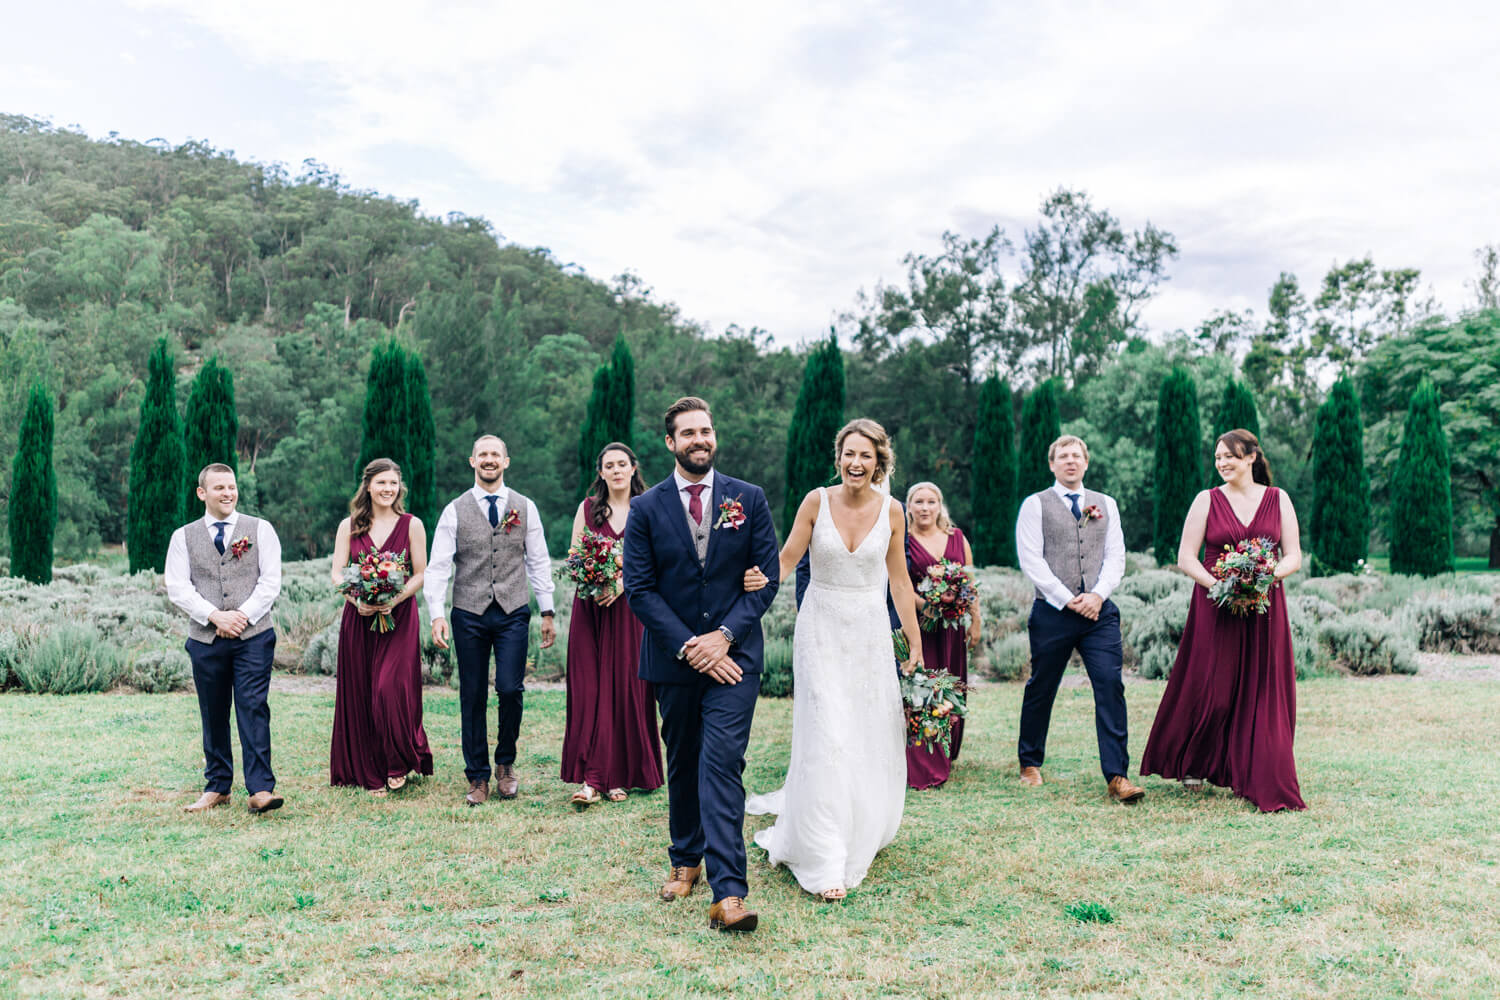 hunter valley wedding photographer bridal party in gardens laughing